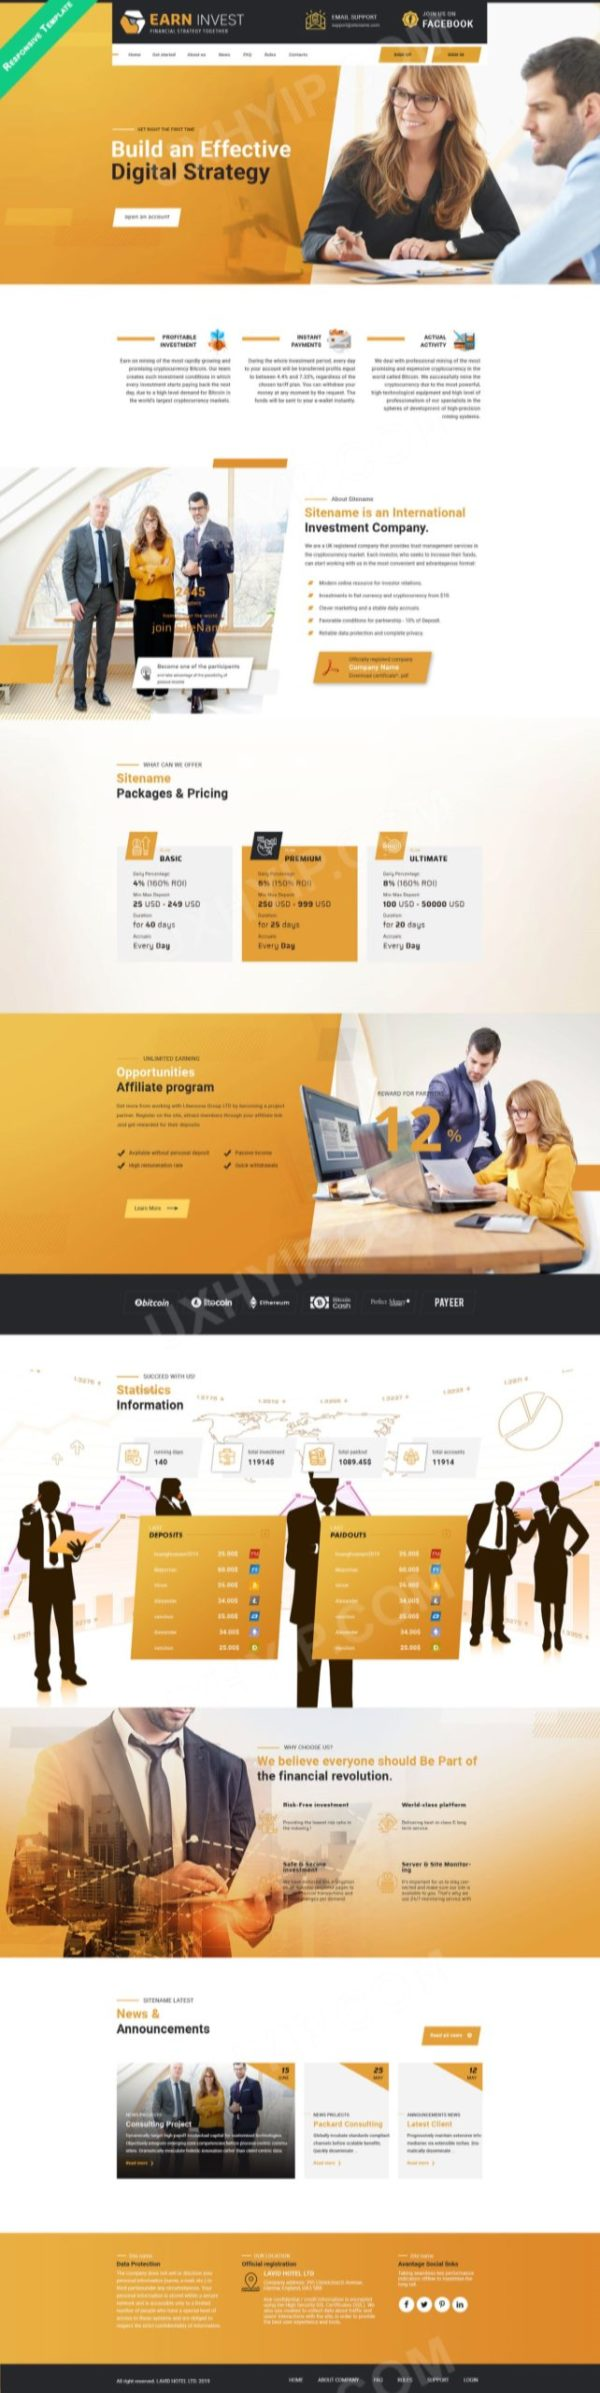 HYIP Template - Investment Business Template ErnInvest ID 121